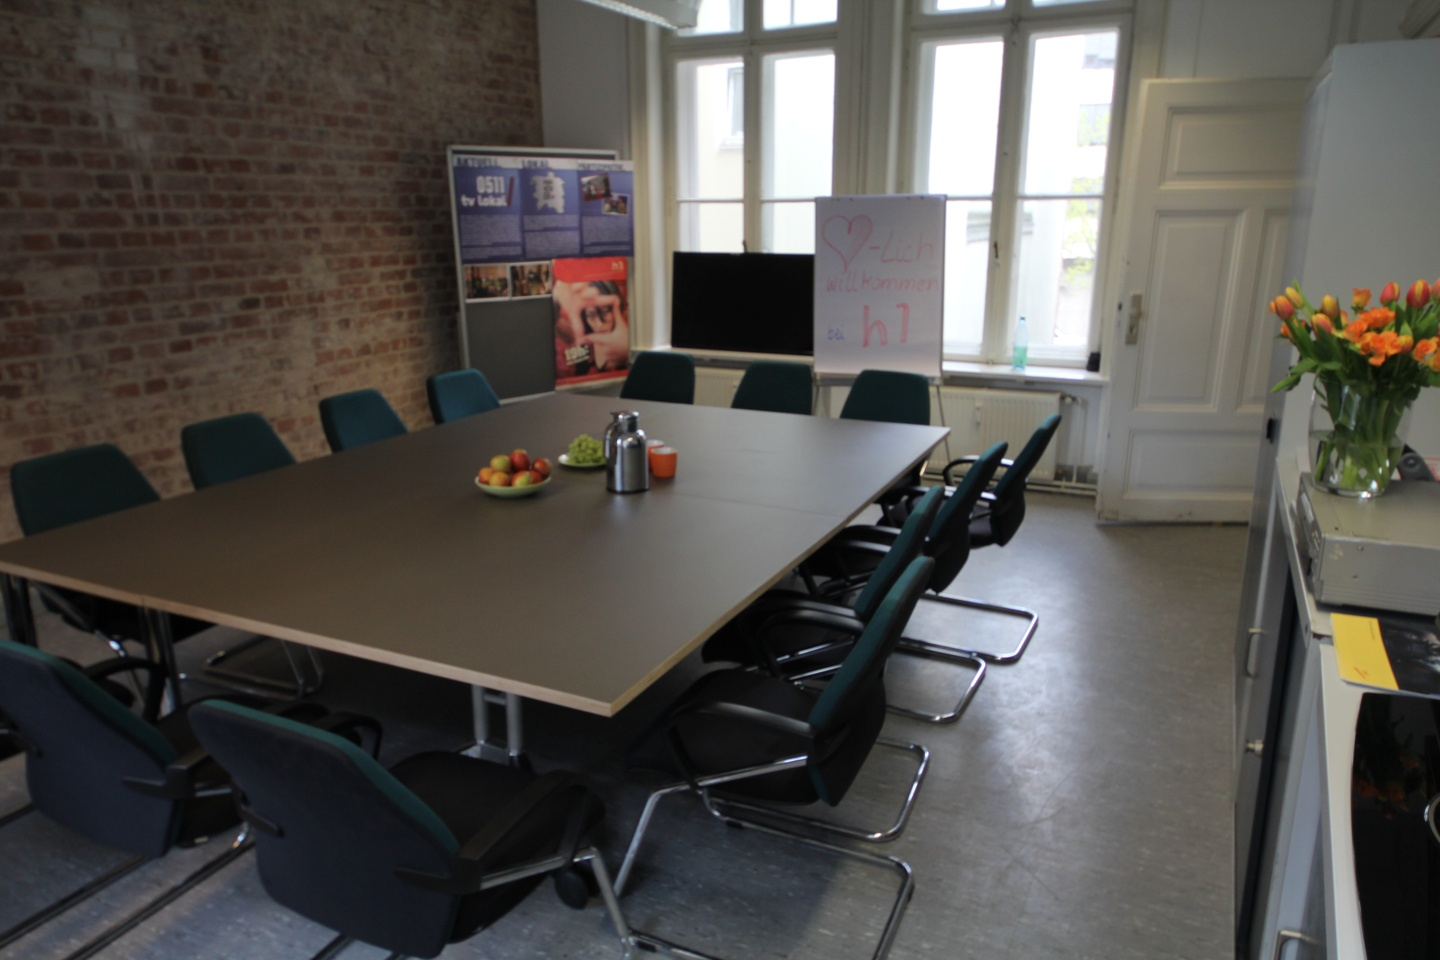 Hannover Train station meeting rooms Meetingraum H1 image 1